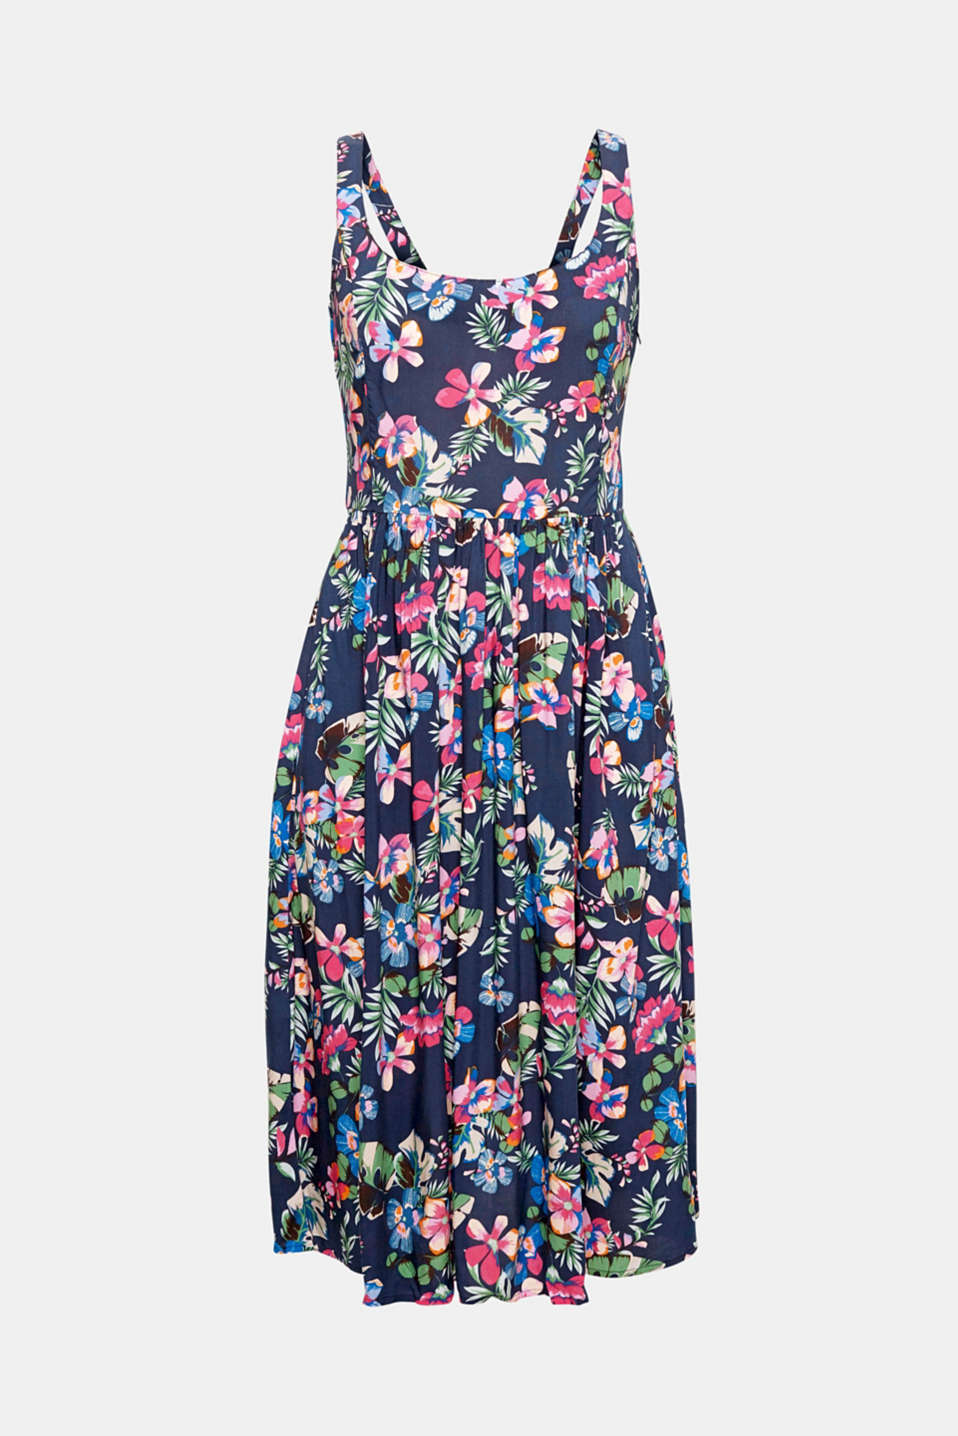 The fresh floral print, narrow straps and bow detail at the back highlight the pretty style of this floaty dress.